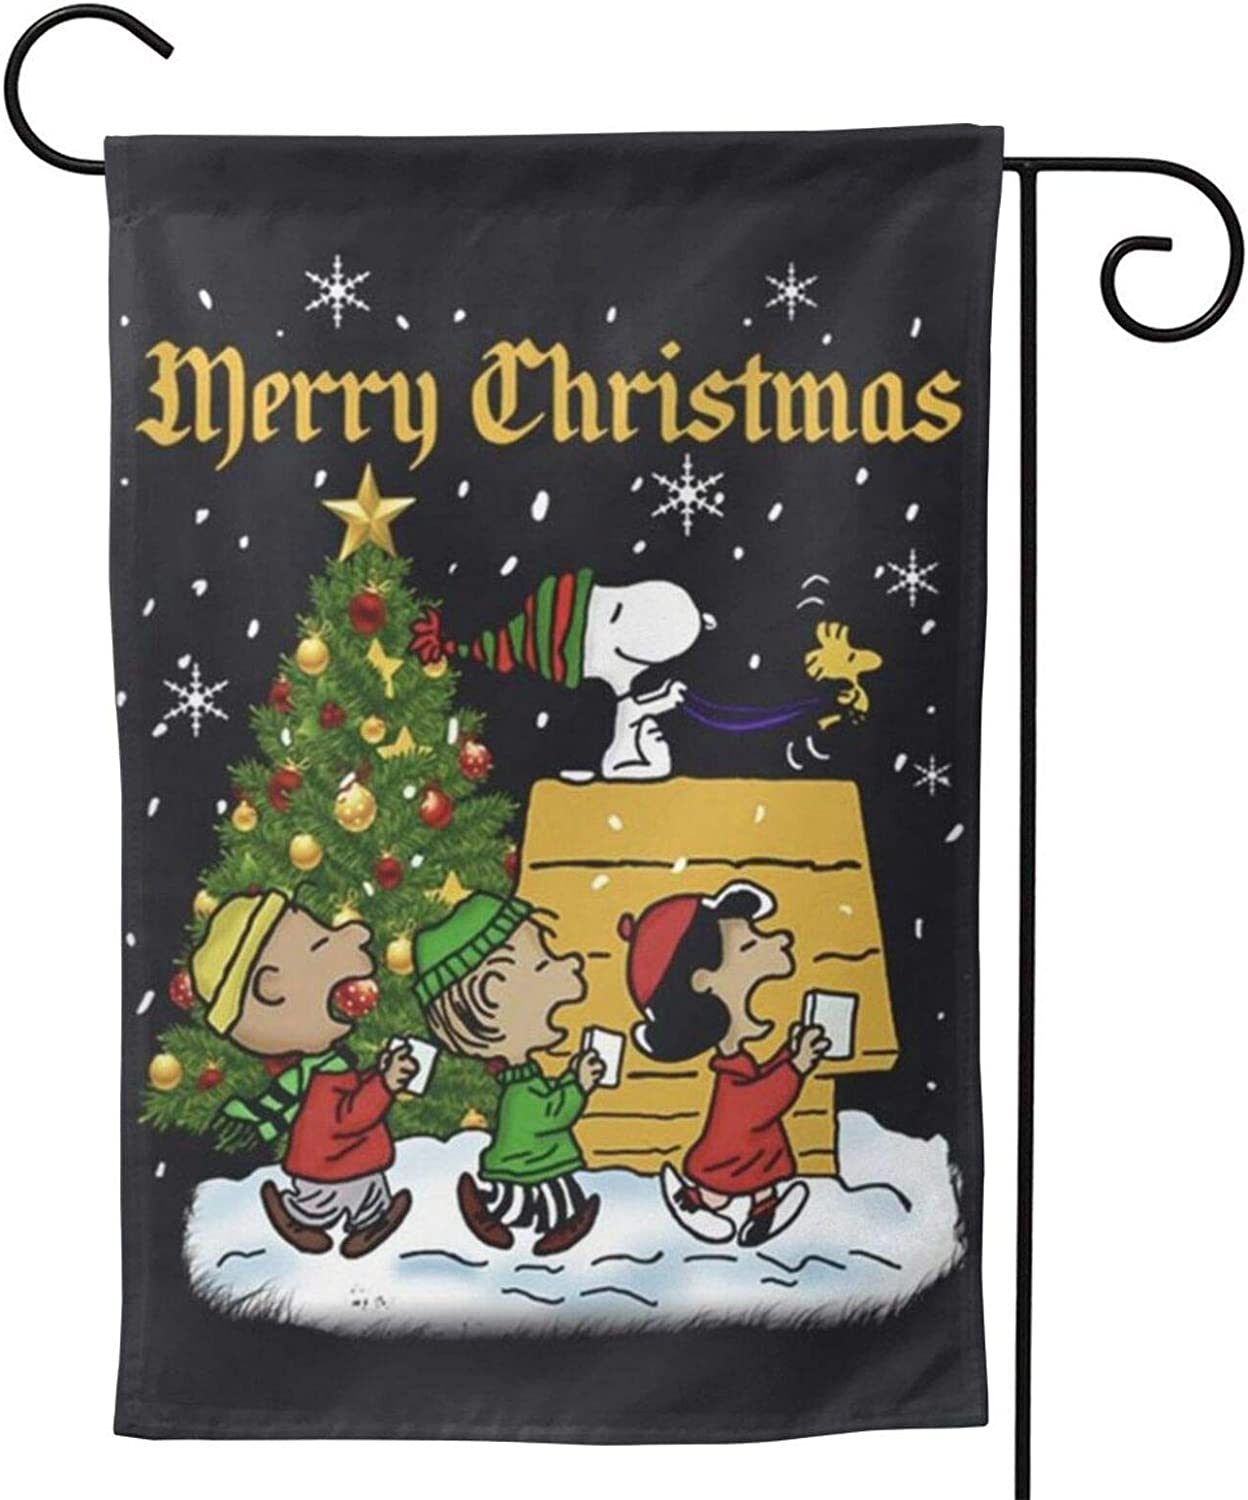 Stockdale Peanuts Christmas Garden Flag Decorative Winter Flag for Courtyard 12.5x18 Inch